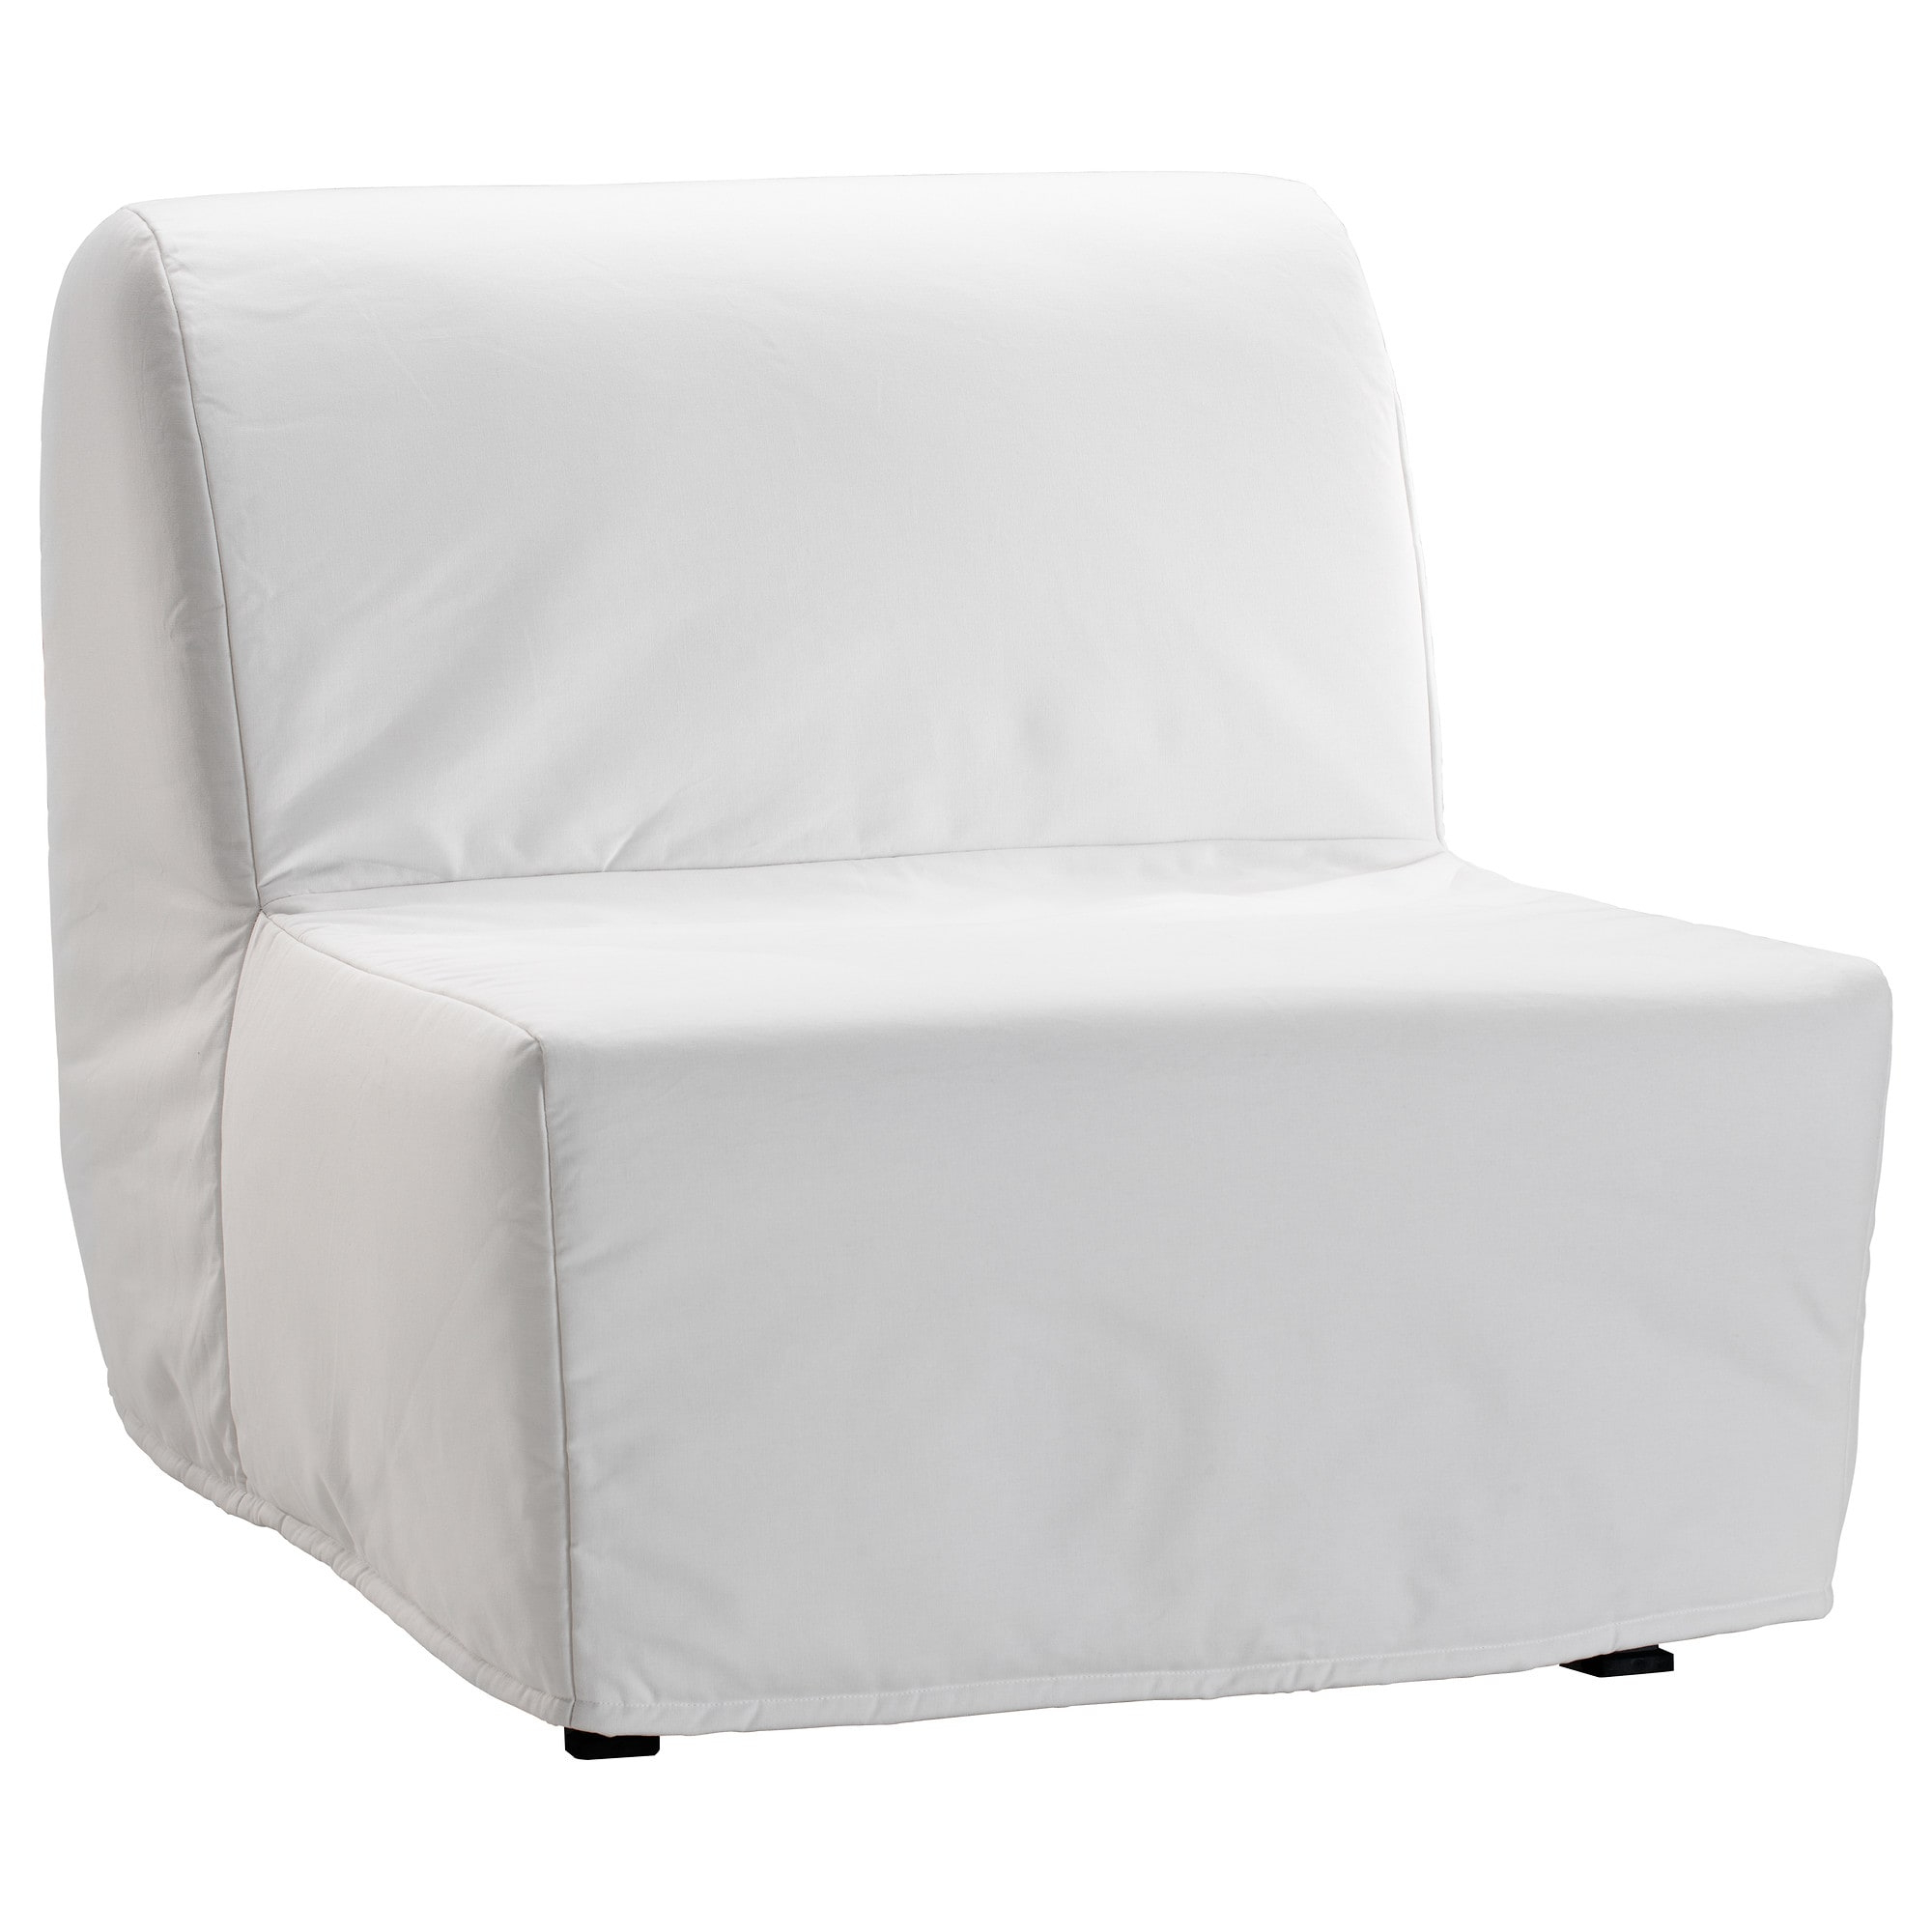 Lycksele Lövås Chair Bed Ransta White – Ikea Within Most Popular Ikea Sofa Chairs (Gallery 8 of 20)